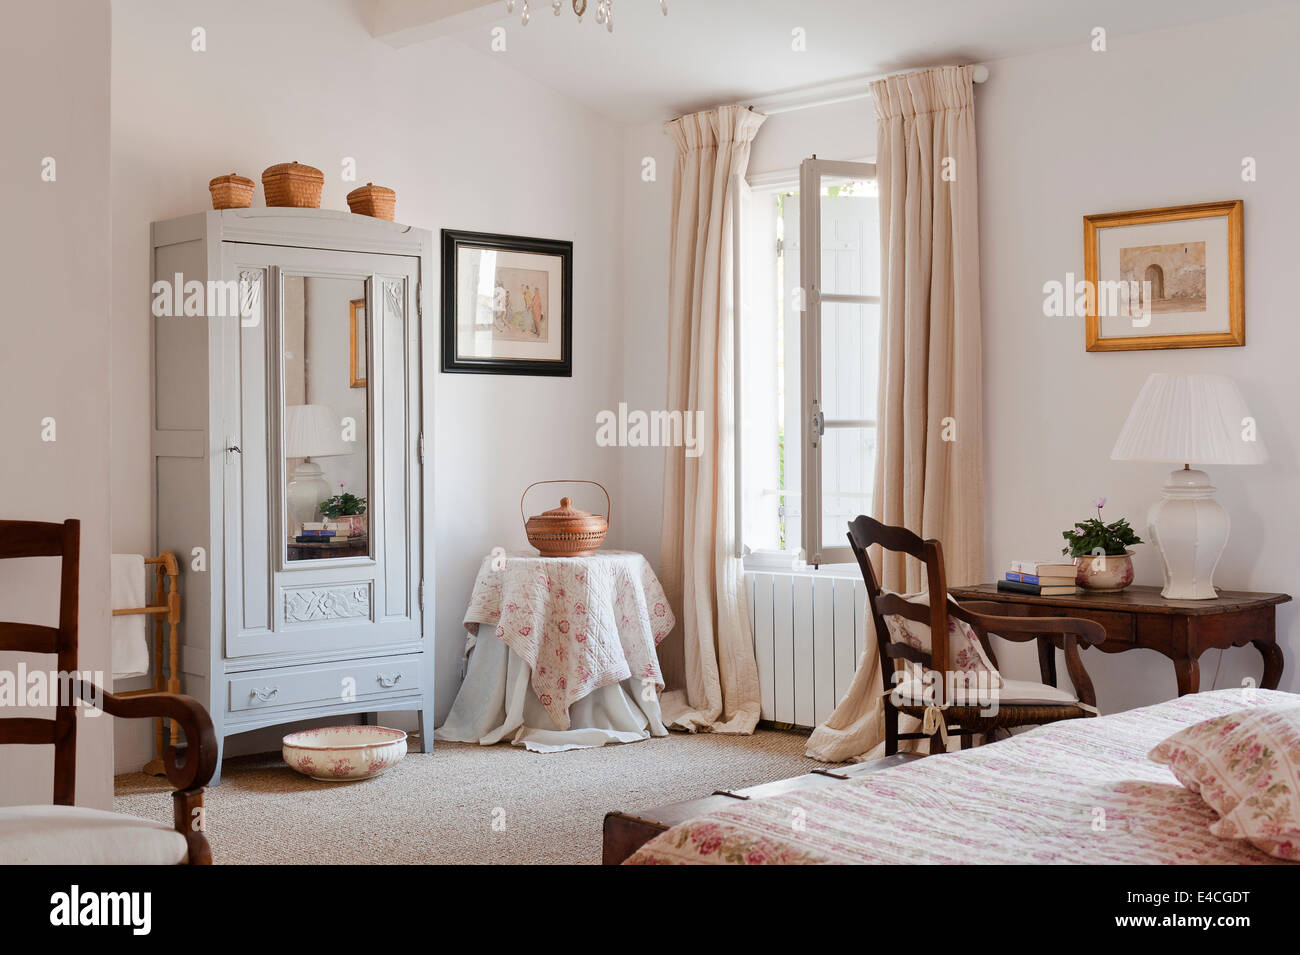 French cupboard in bedroom with seagrass mat and quilted floral fabric - Stock Image